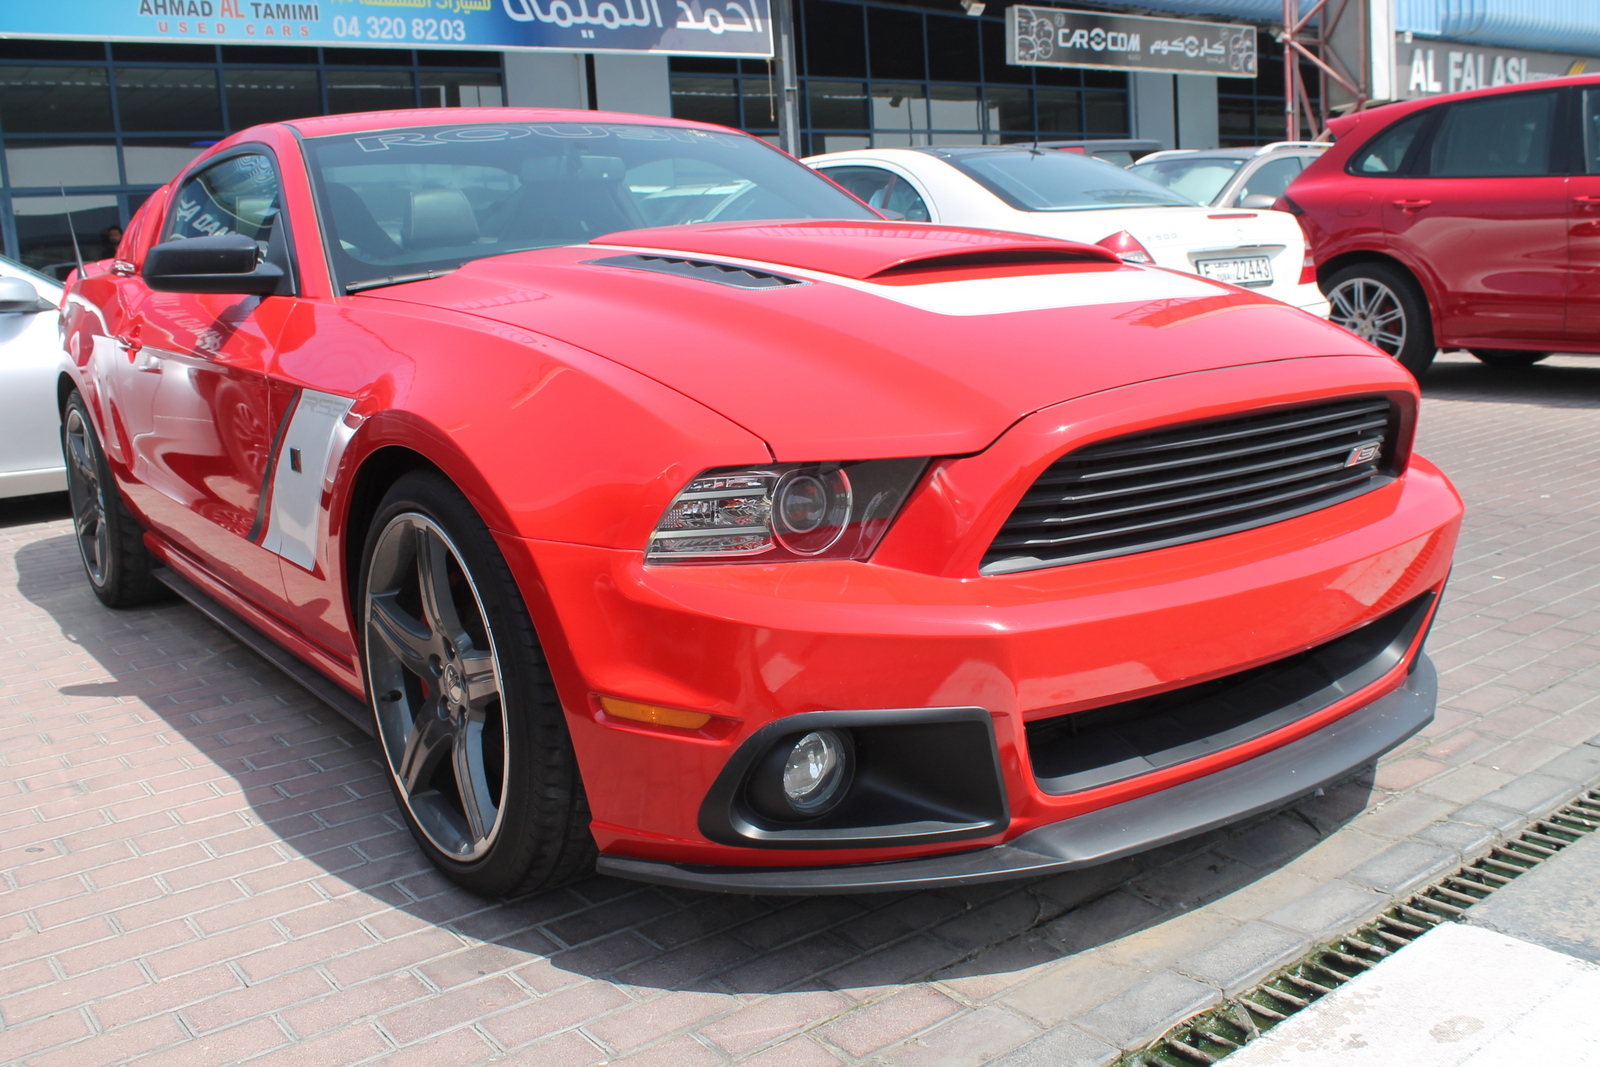 used ford mustang roush 2014 car for sale in dubai 754422. Black Bedroom Furniture Sets. Home Design Ideas